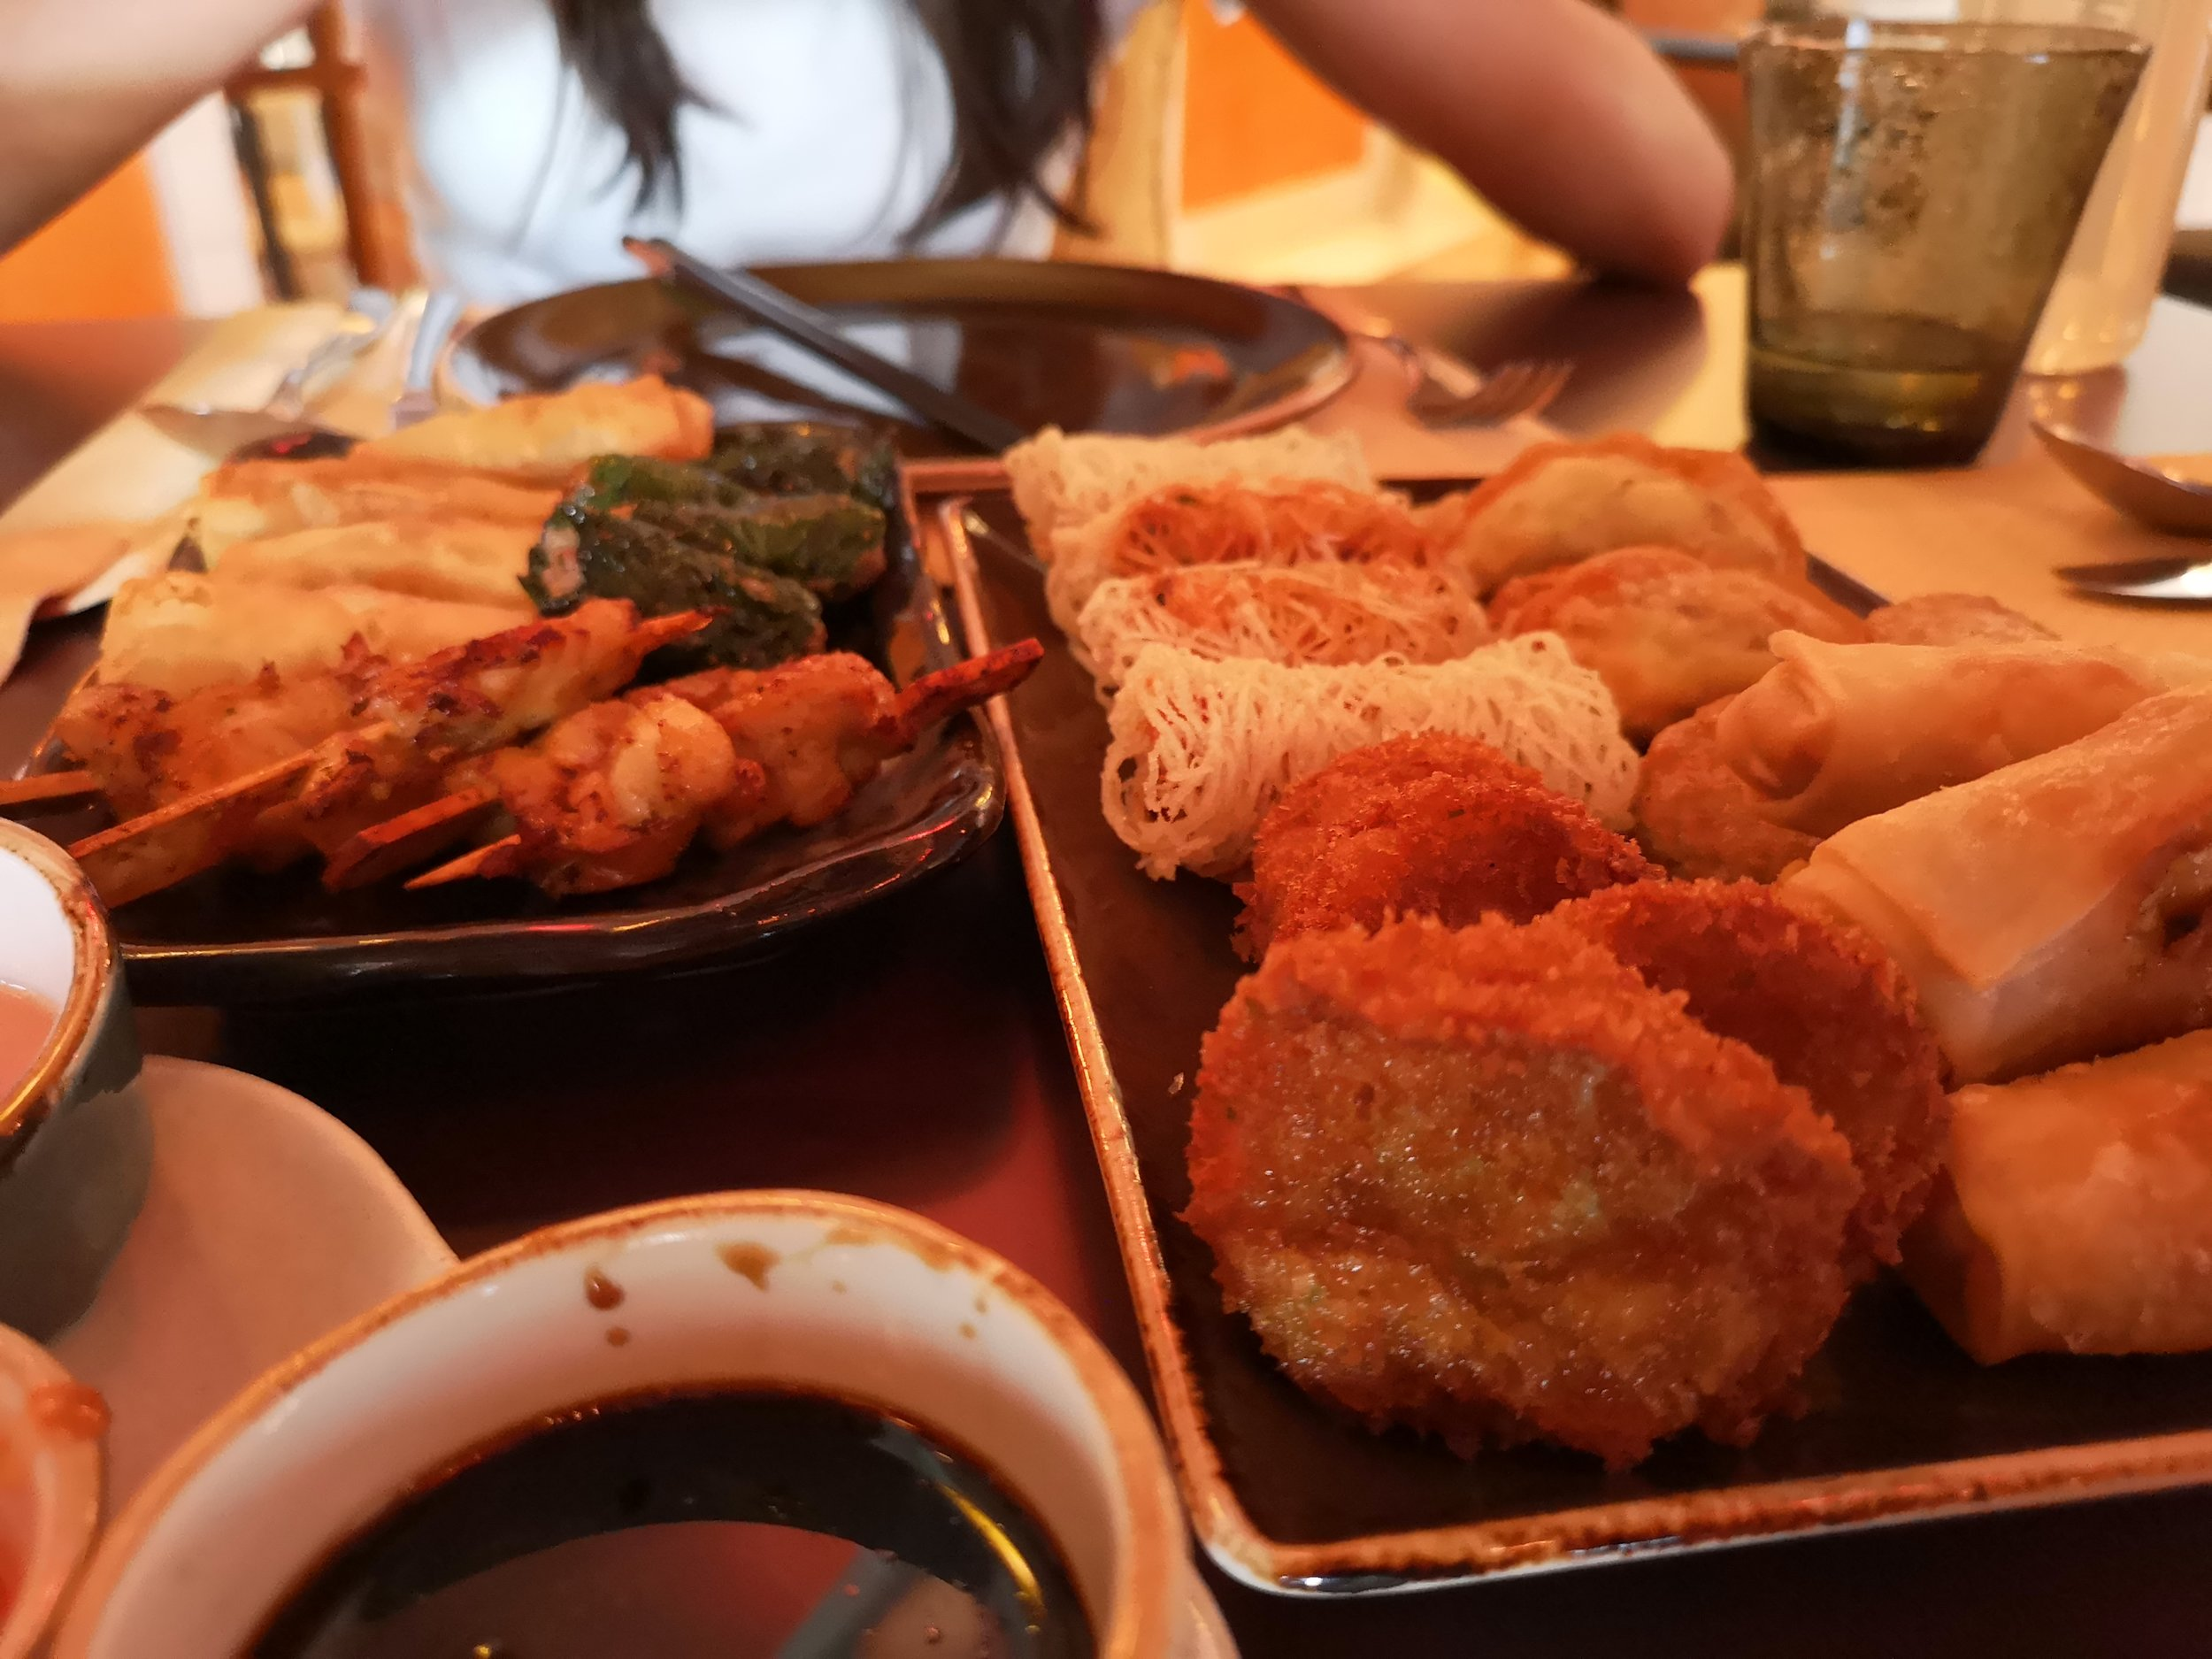 The Cha Ca is the most prominent dish you see. Nearest dish to the camera (right plate left bottom)